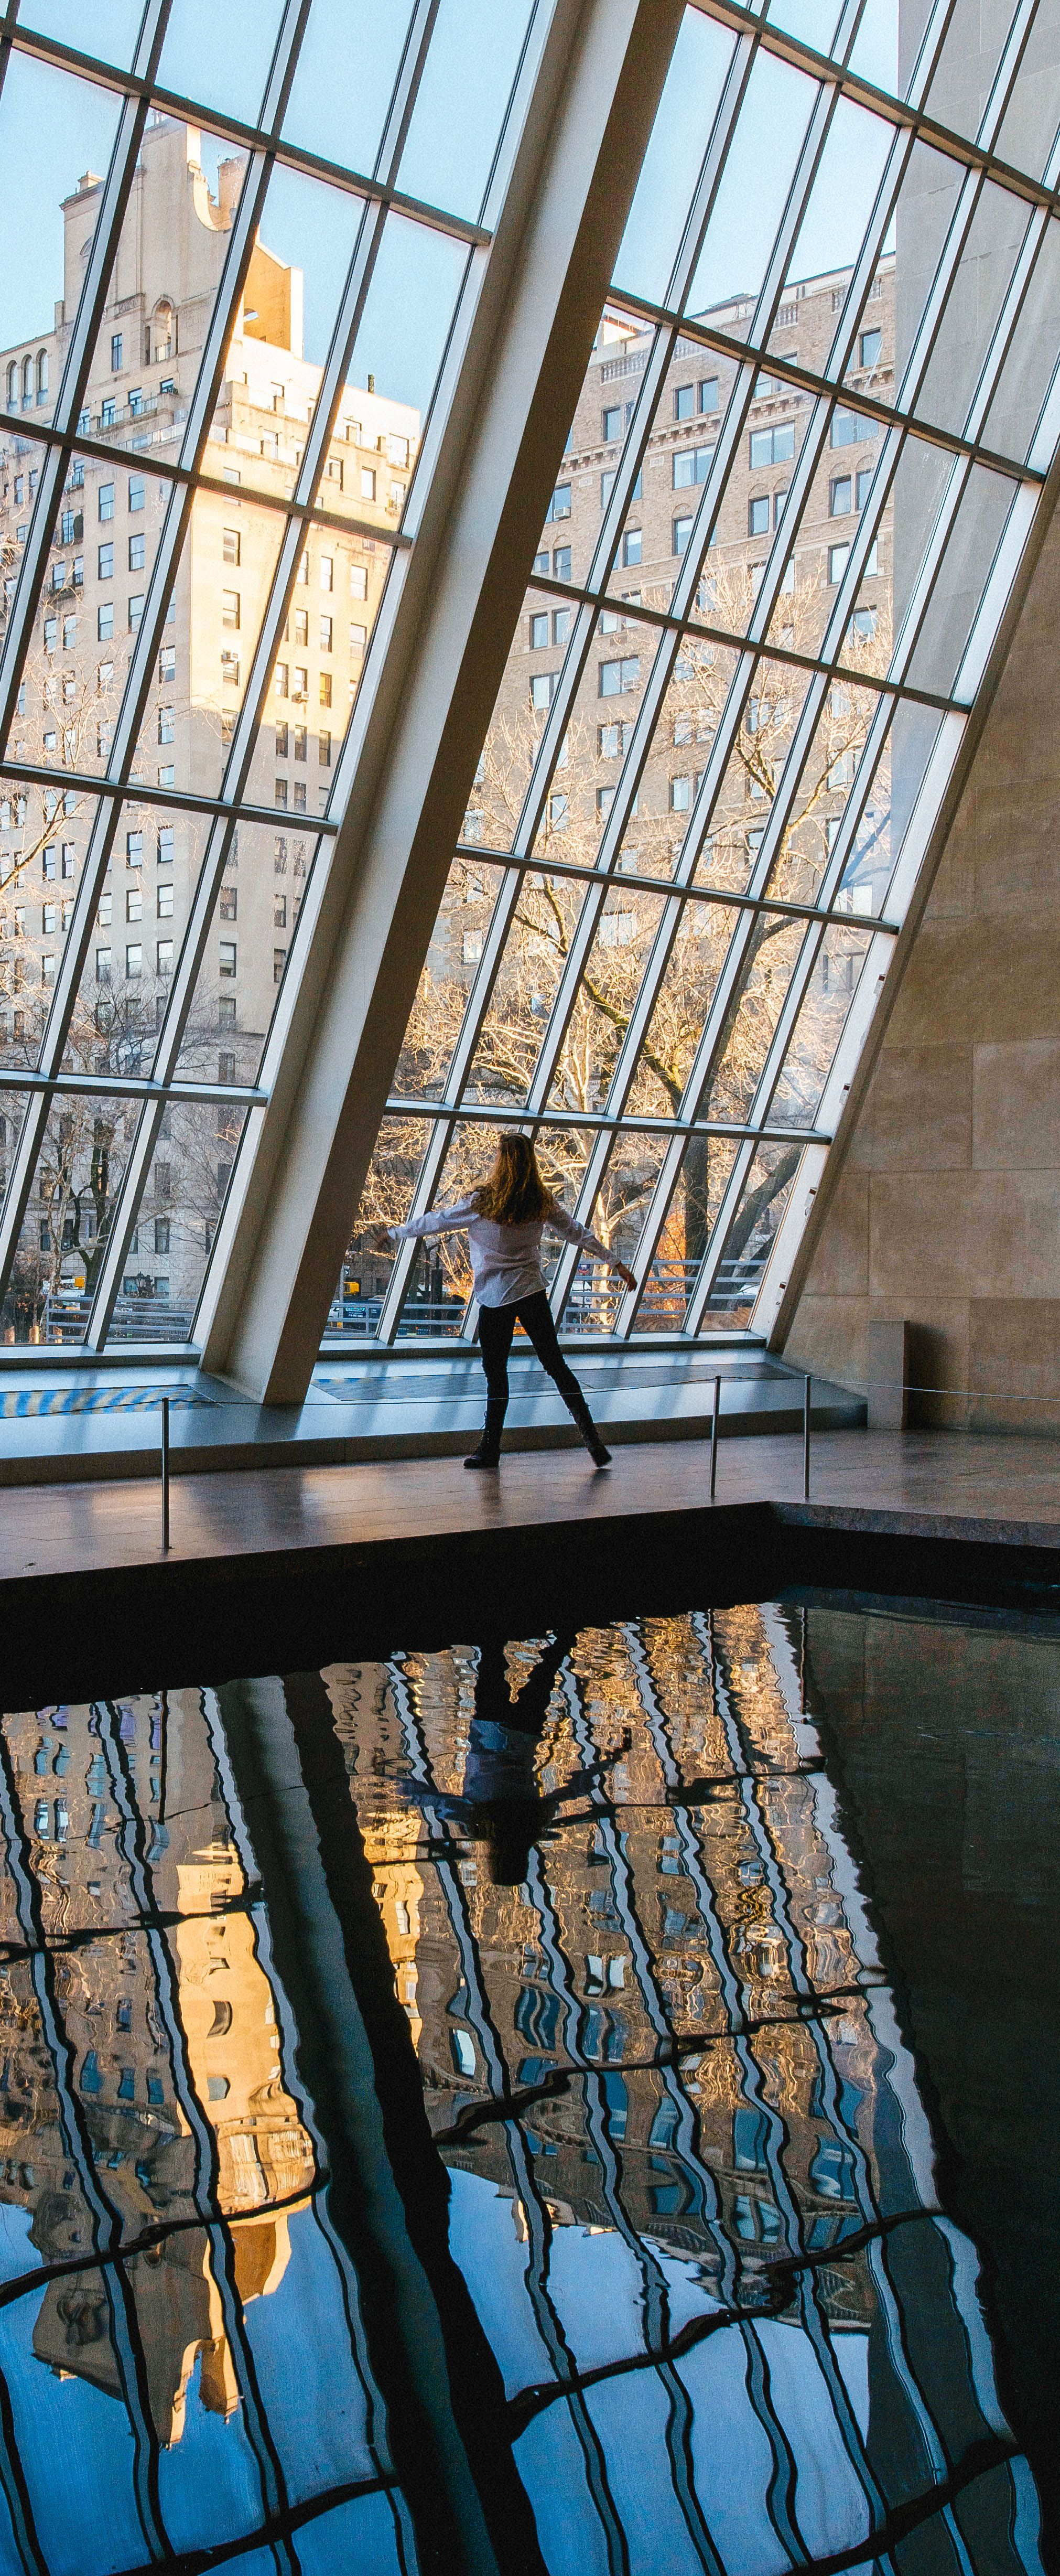 Have you entered our Insta Contest yet?! Use the hashtag on your best @metmuseum Instagram photos for a chance to visit without all of the crowds! Deadline: 3/29